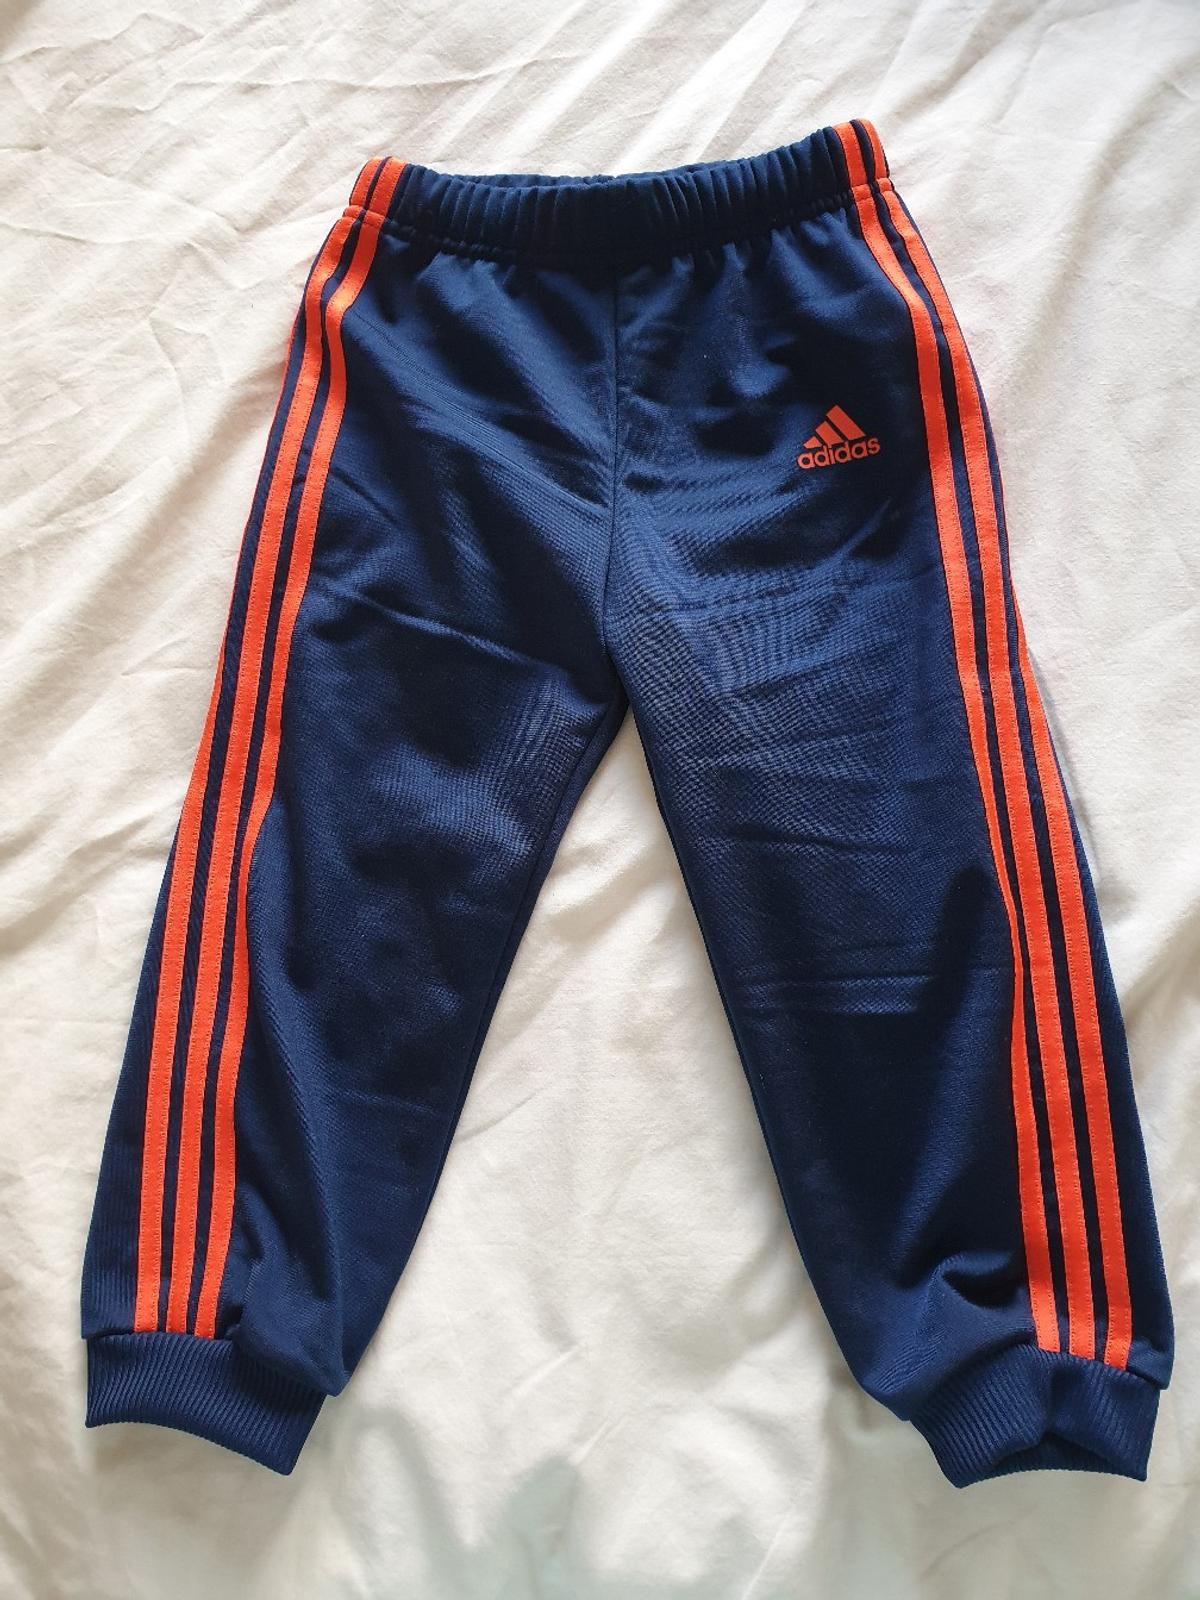 yet not vulgar no sale tax lower price with Boys Adidas Tracksuit bottoms 18-24 months